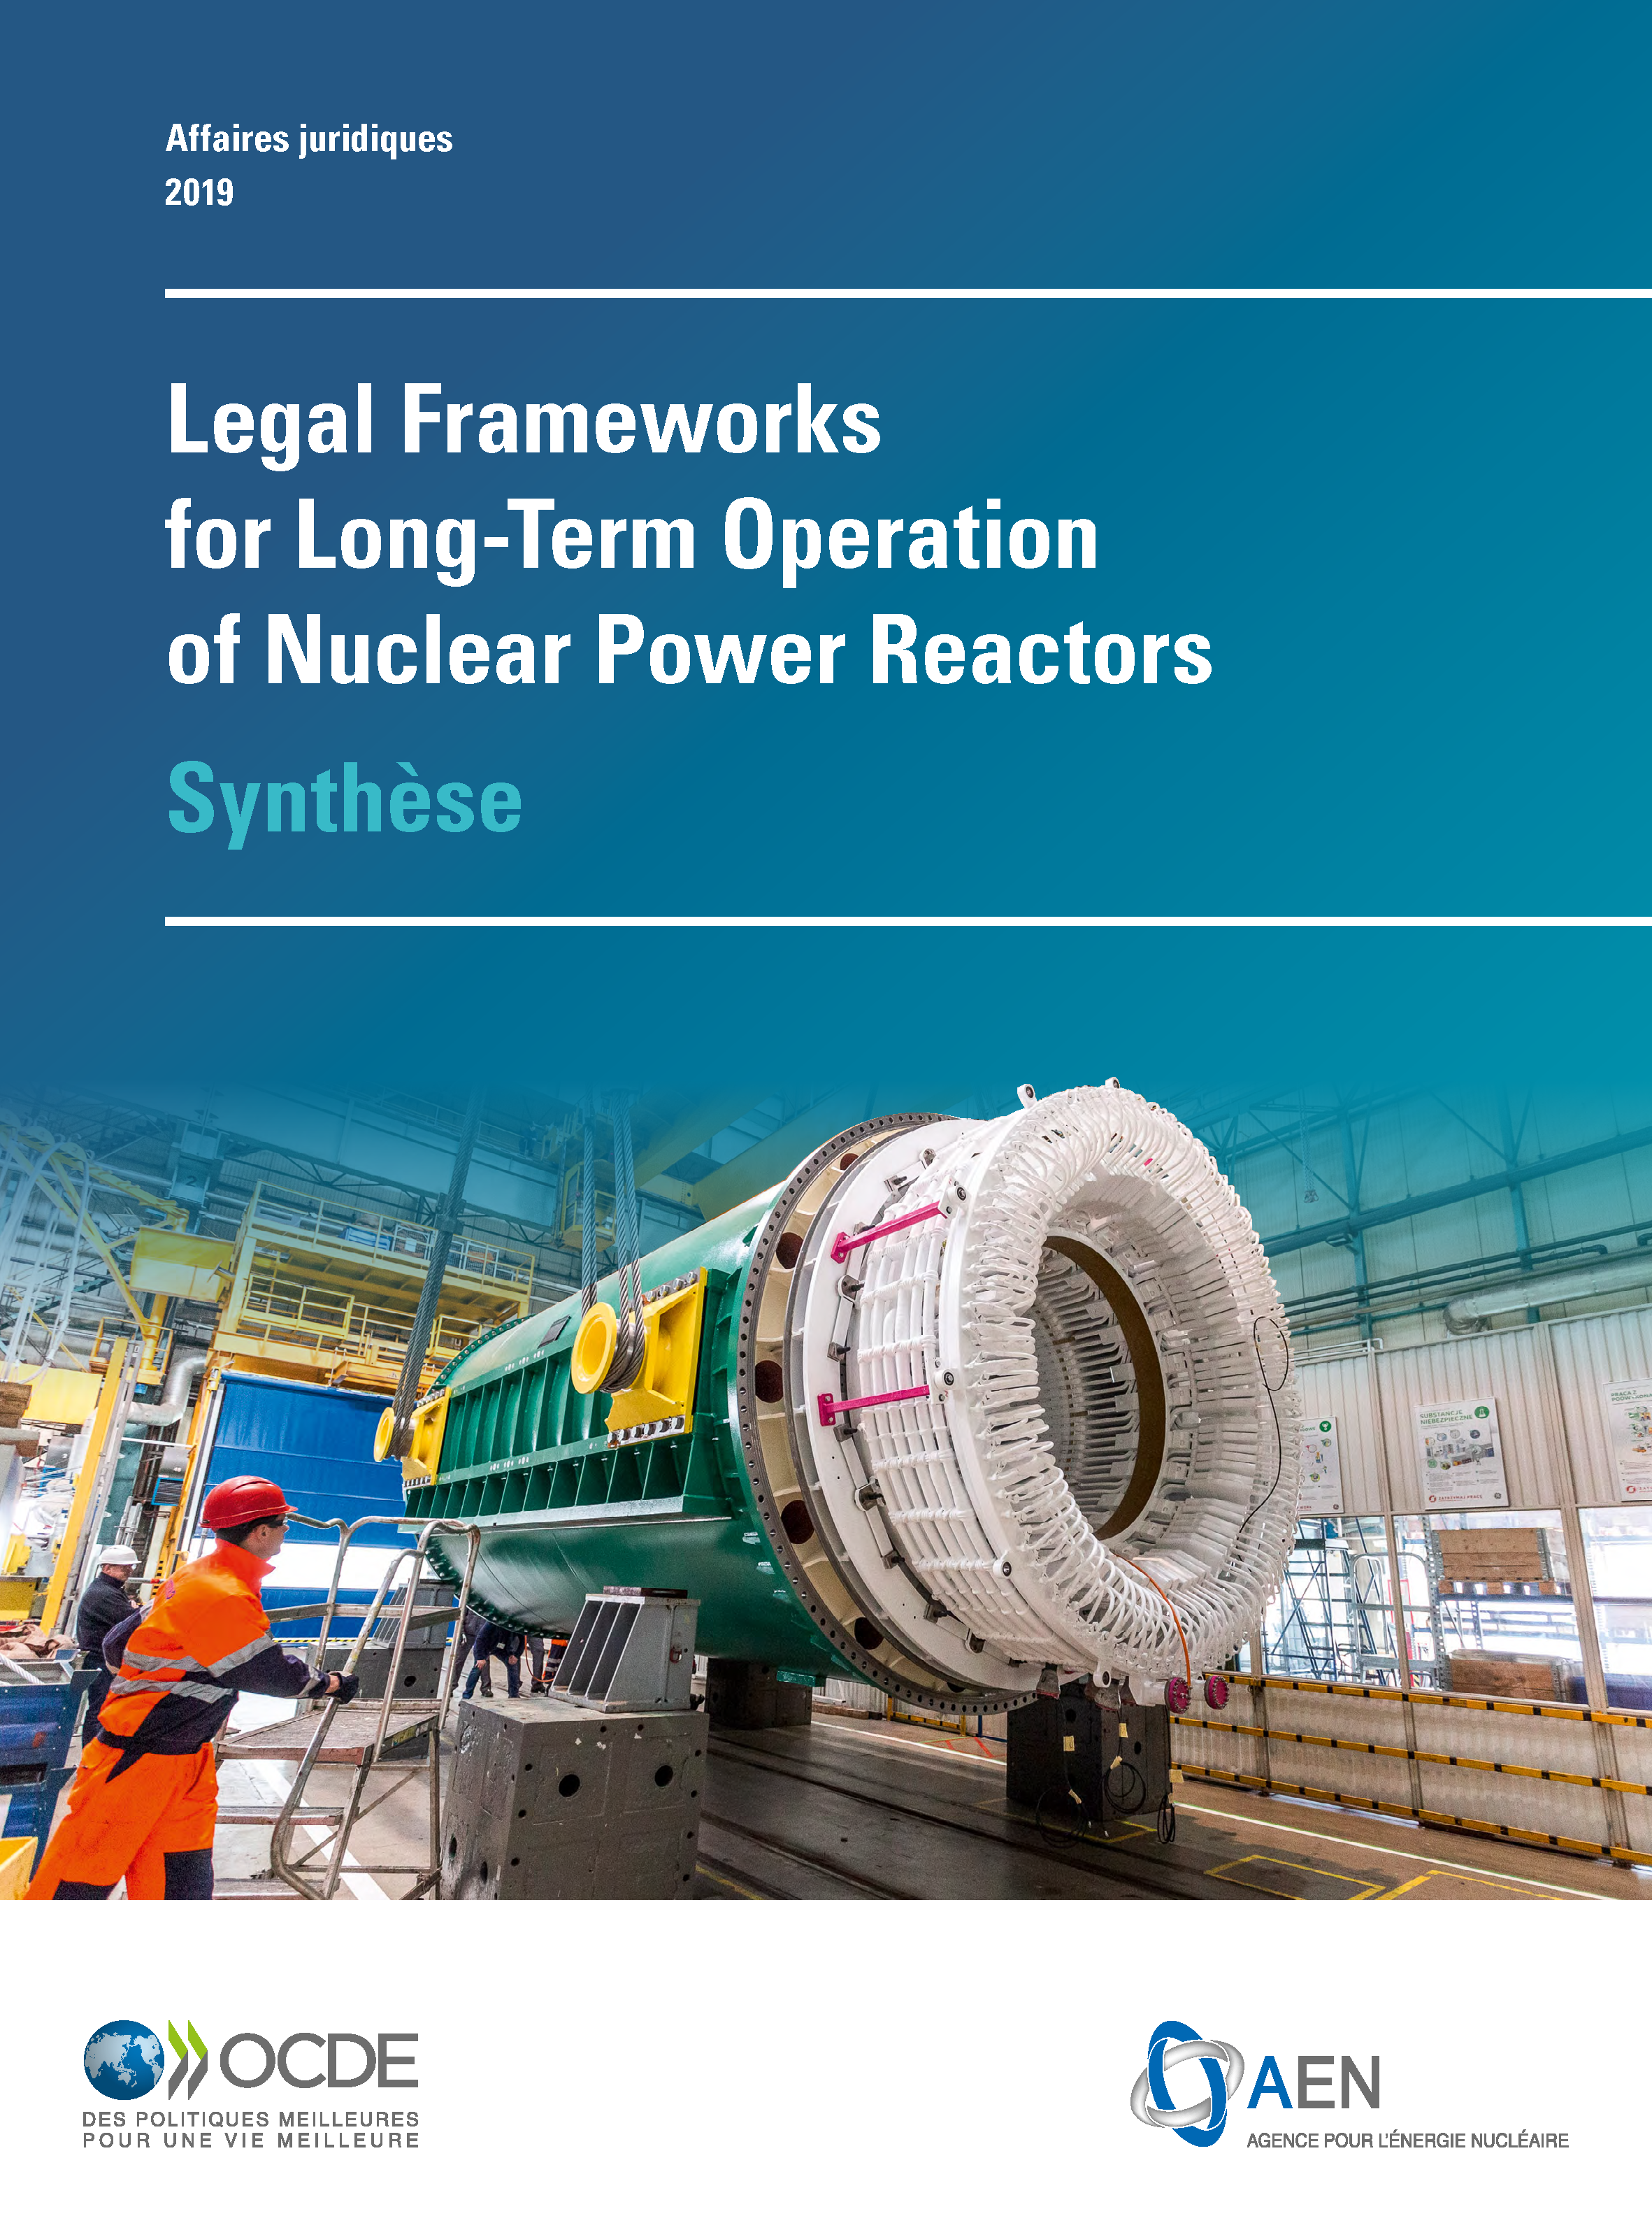 Legal Frameworks for Long-Term Operation of Nuclear Power Reactors Executive Summary in French